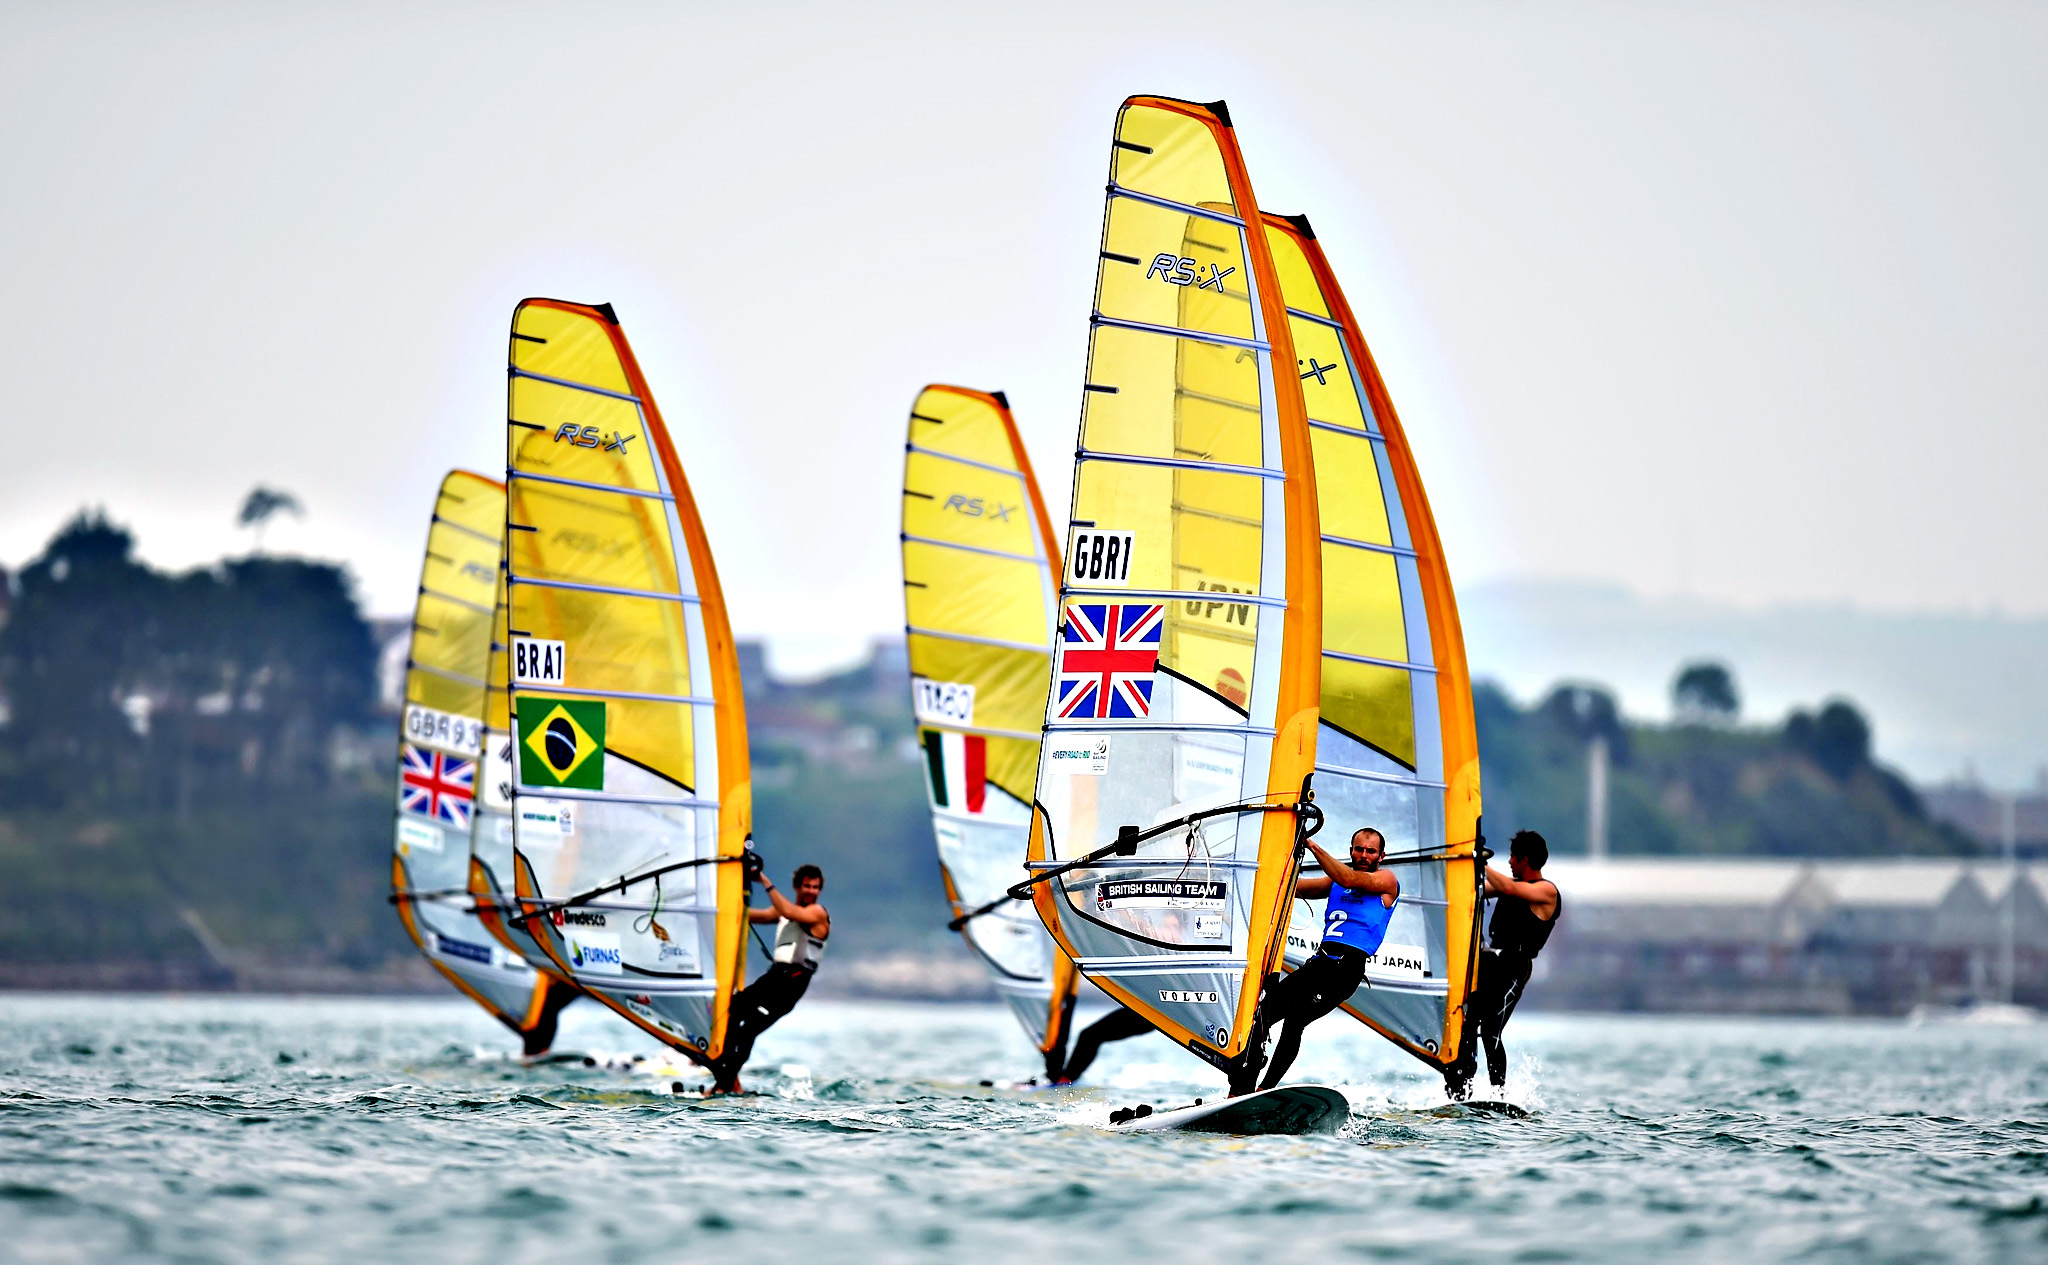 Great Britain's Nick Dempsey comes home to win the first race of the day during the Men's RS:X windsurfing on day five of the ISAF Sailing World Cup at Weymouth. PRESS ASSOCIATION Photo. Picture date Wednesday June 12, 2015.